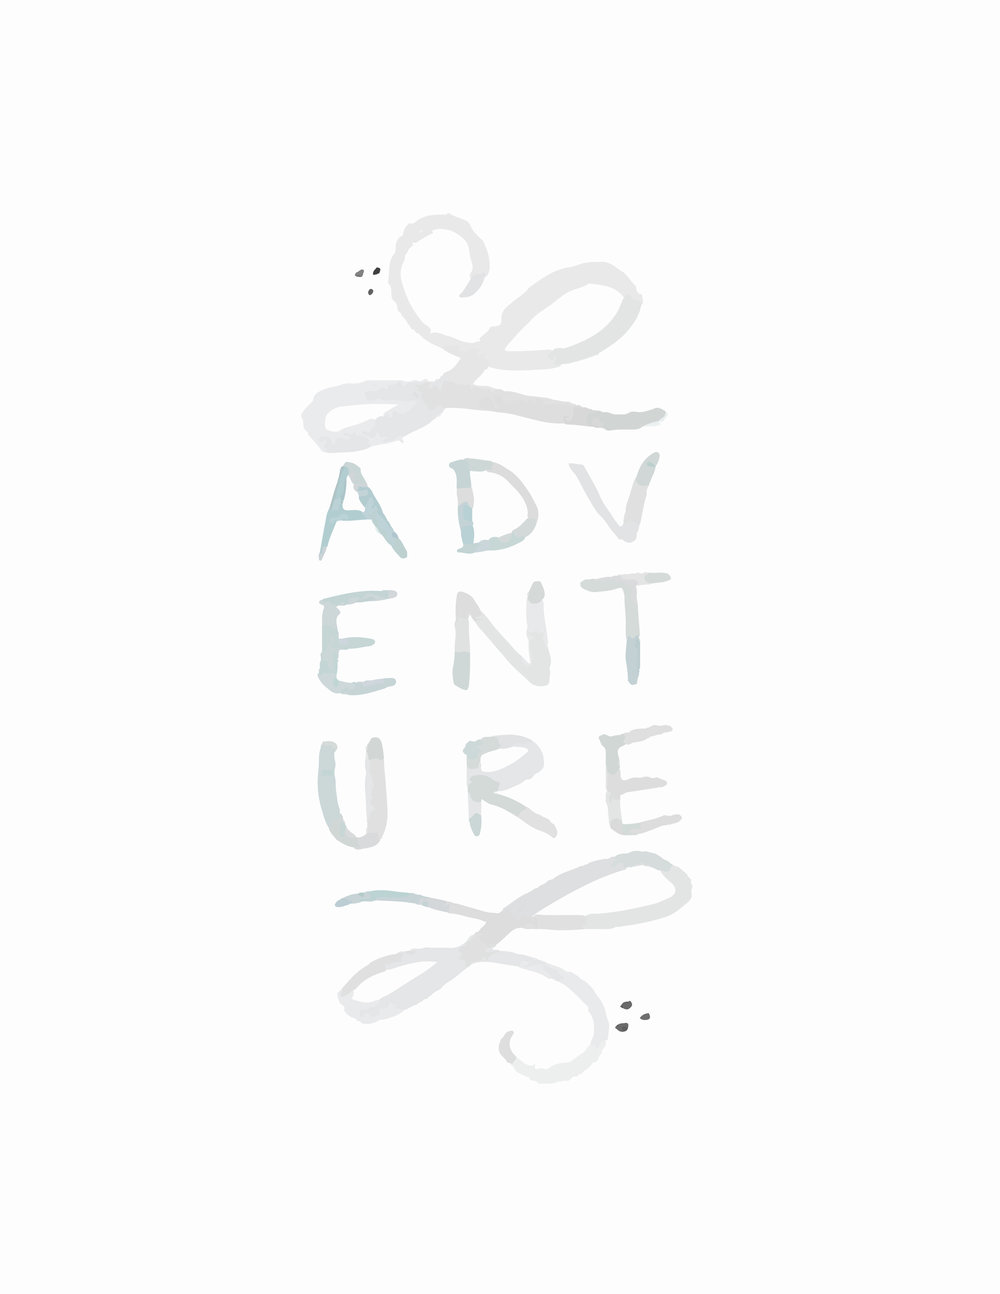 ADVENTURE PHONE BACKGROUND